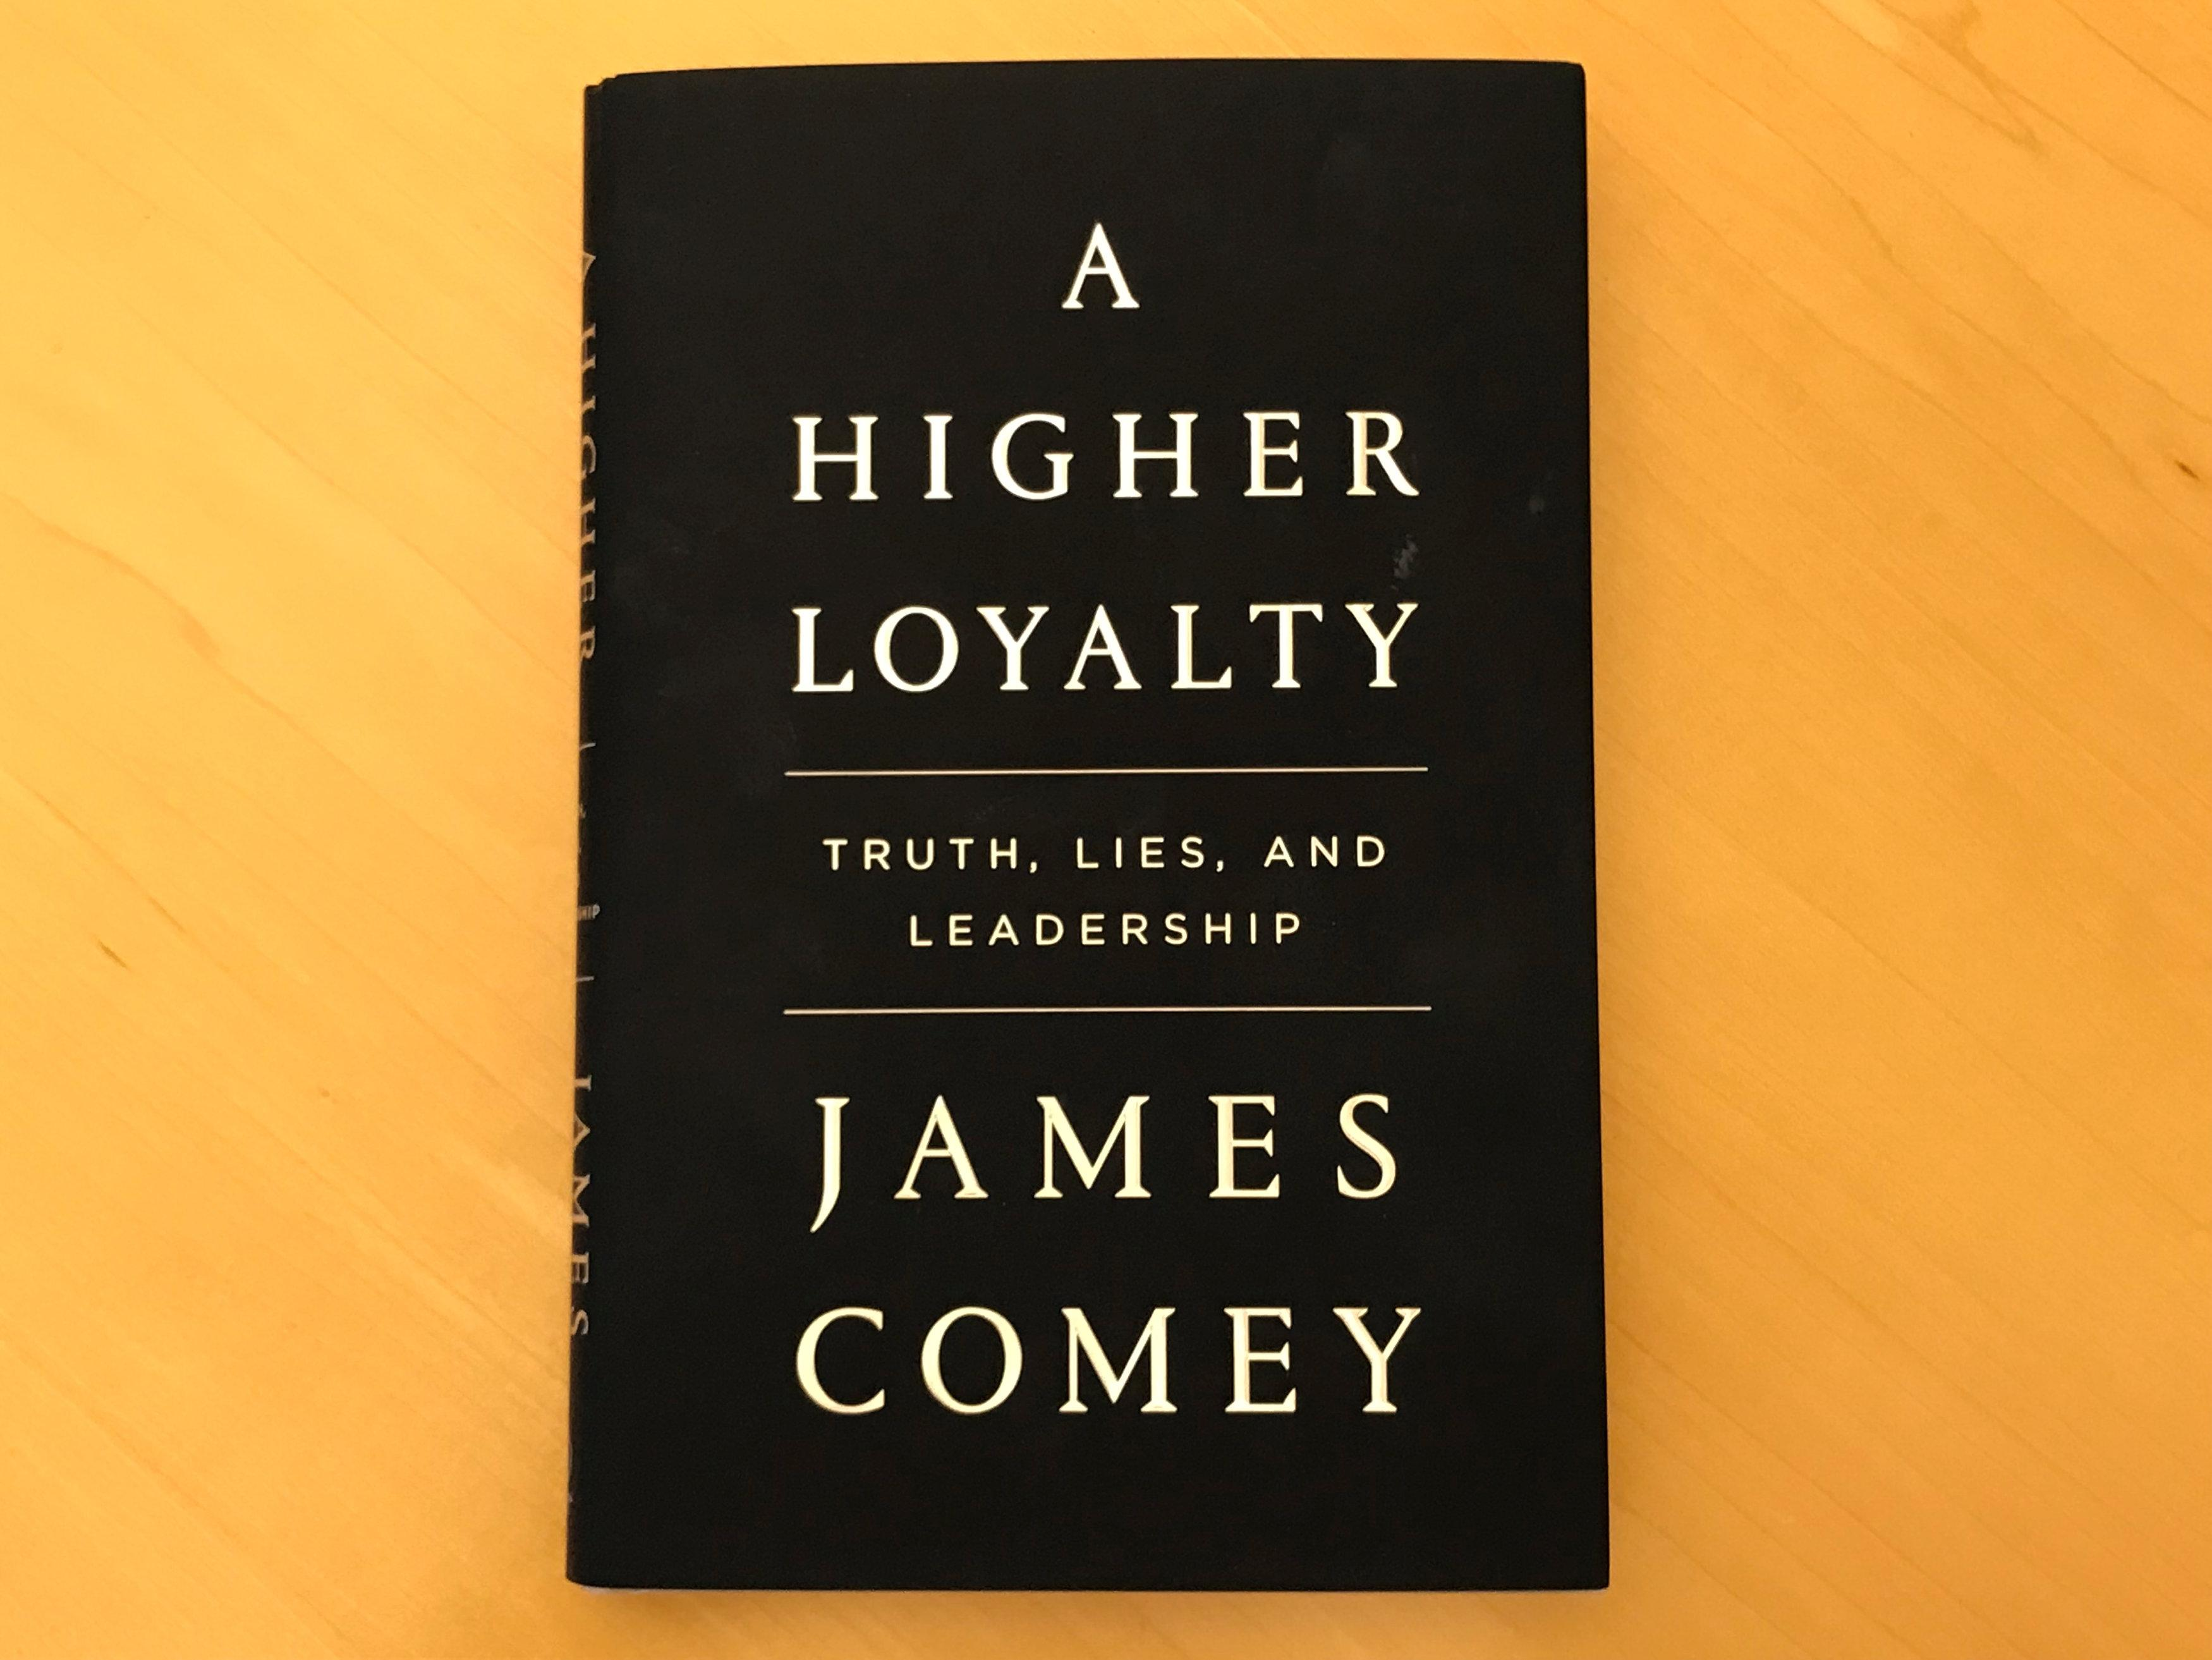 A copy of former FBI director James Comey's book